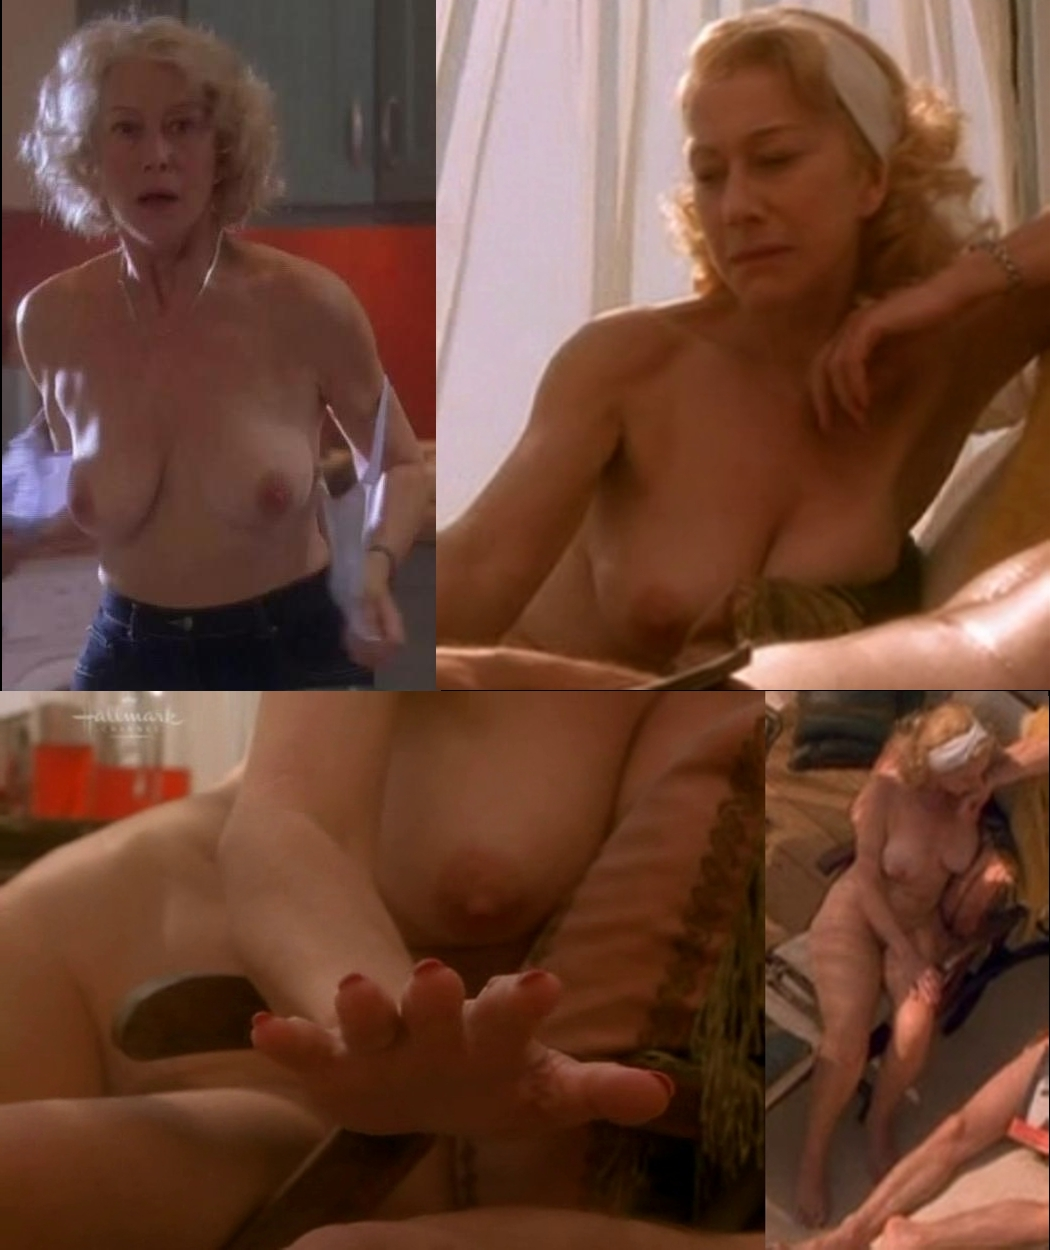 Screwballs nude scenes